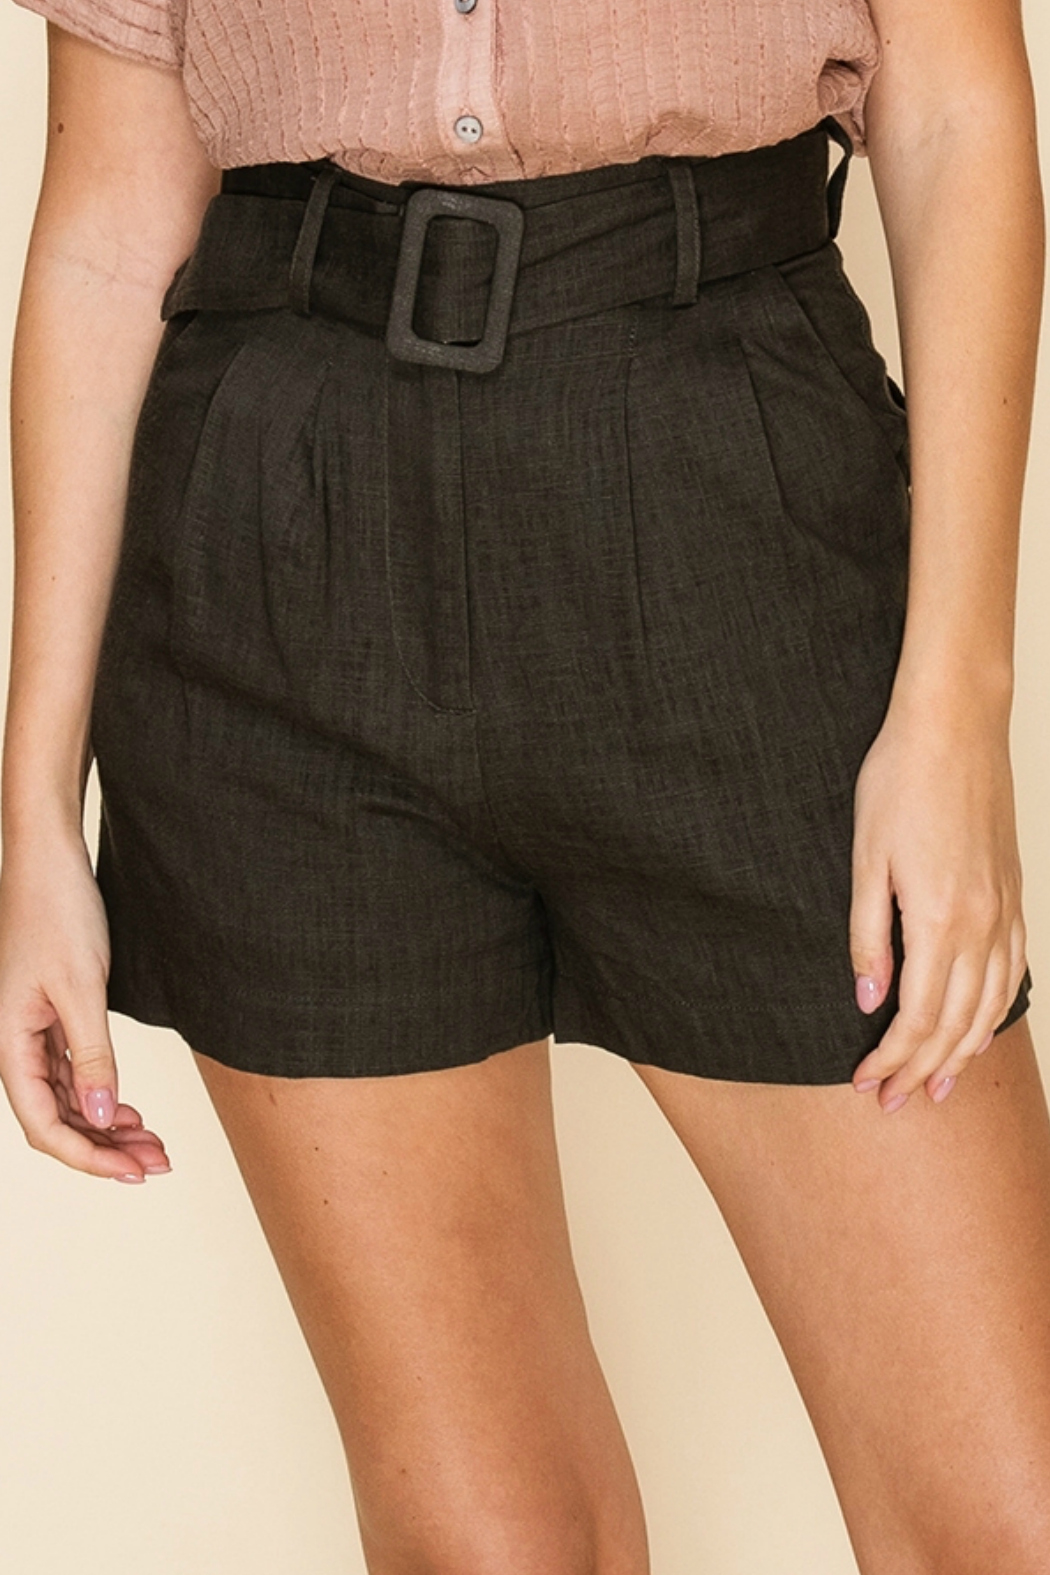 HYFVE WALKING SHORTS WITH MATCHING BELT - Front Cropped Image